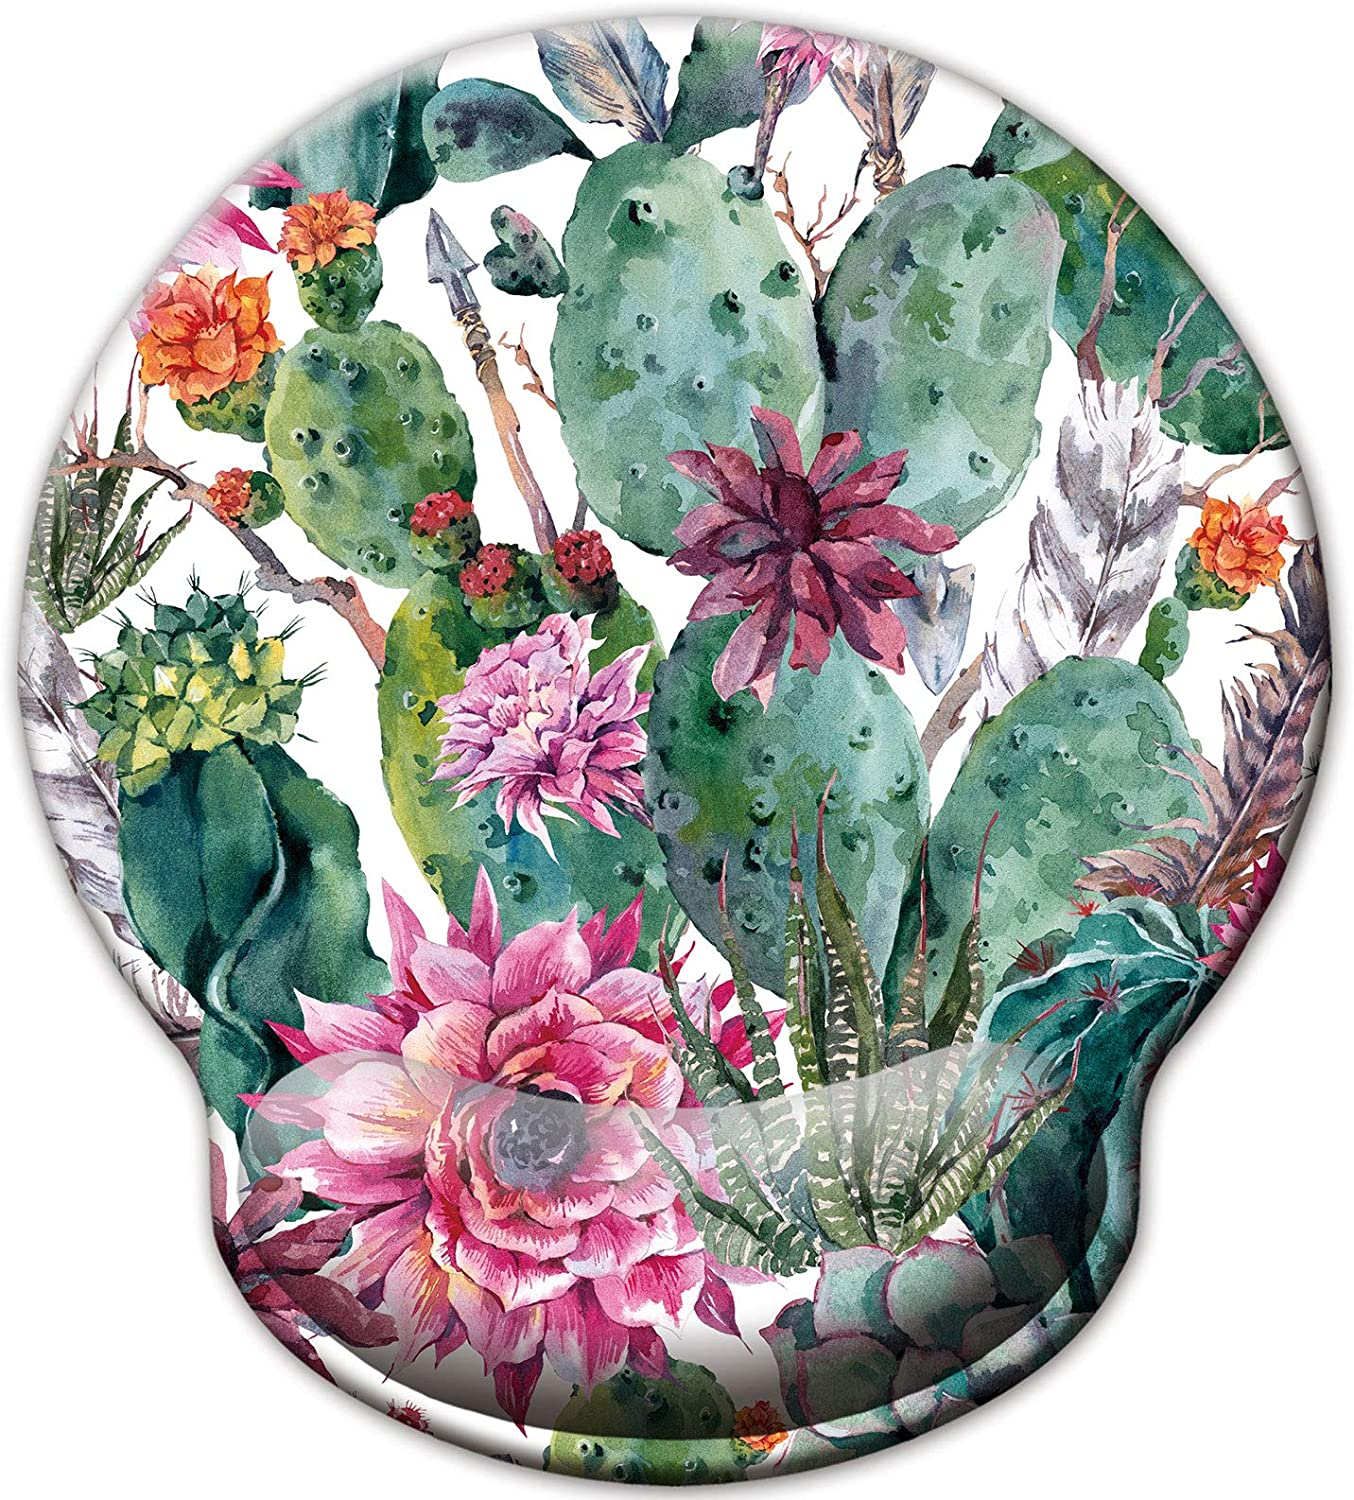 Ergonomic Mouse Pad with Wrist Support Rest, Blooming Cactus Cacti Succulents Colorful Watercolor Abstract with Flowers Florals Wrist Pad for Desk Laptop Computer Home Office Working Studying Travel